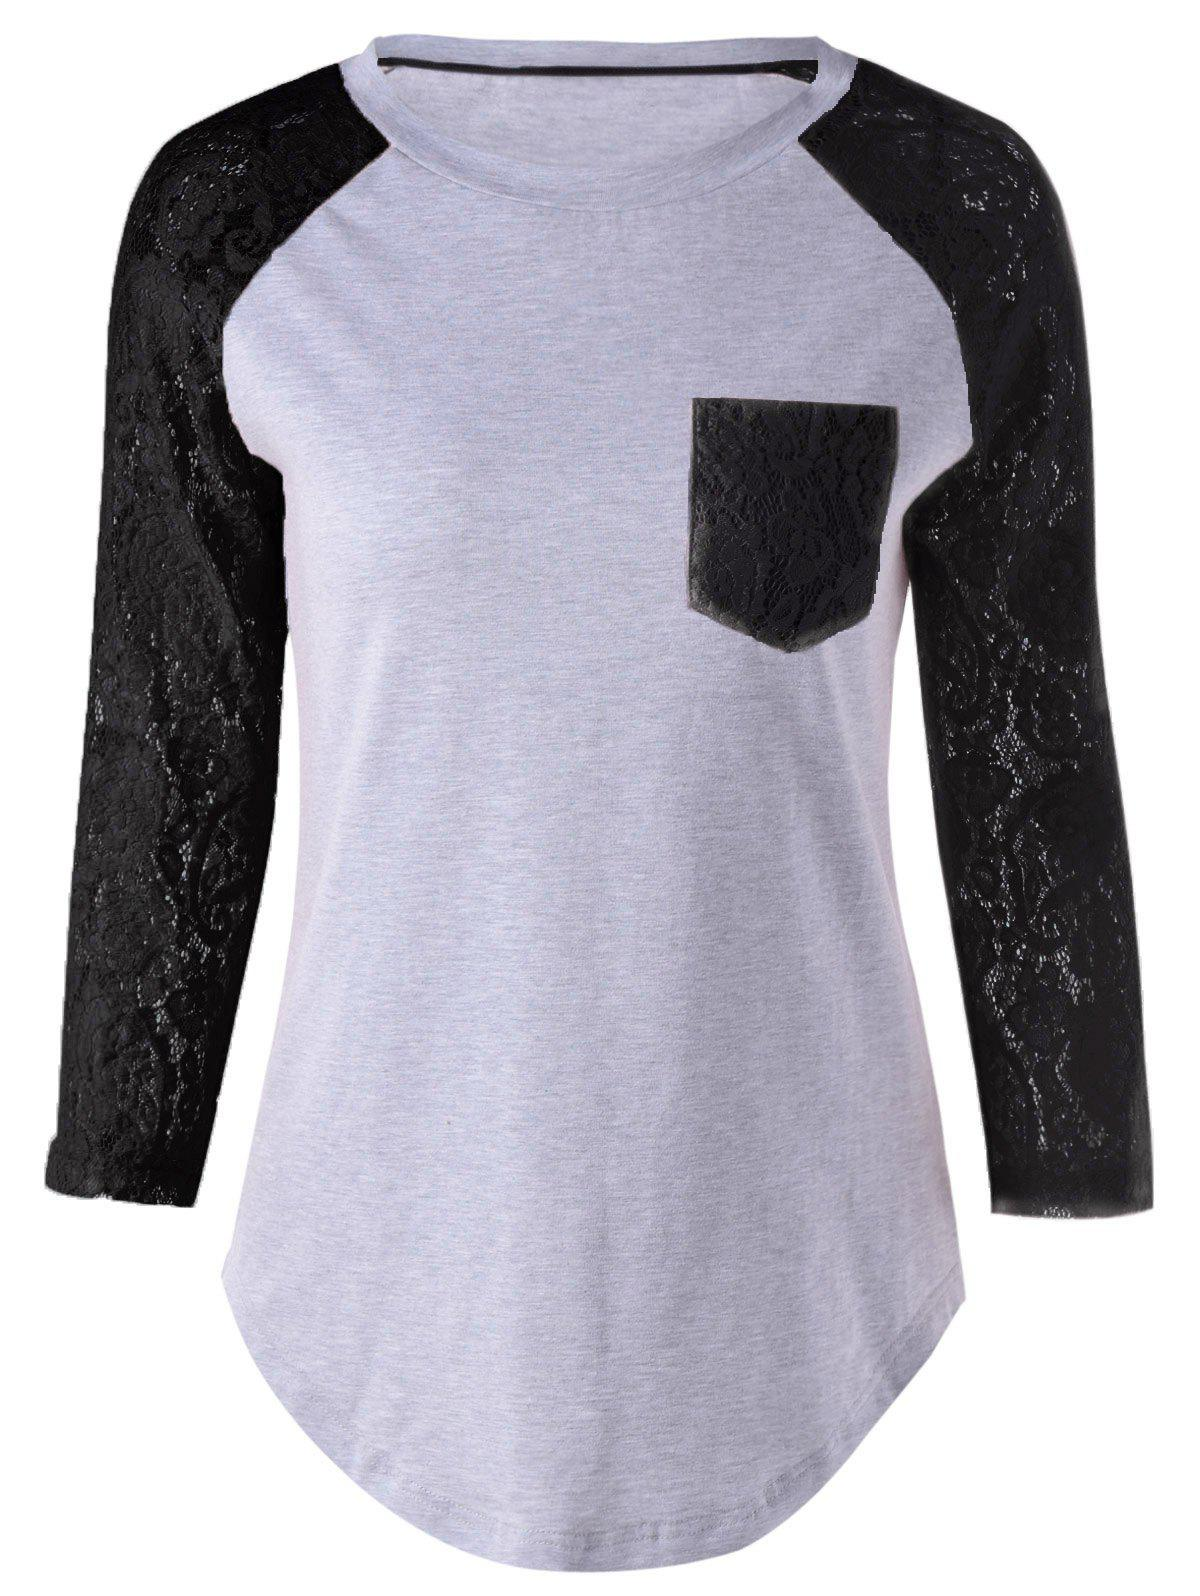 Plus Size Lace Splicing Single Pocket T-ShirtWOMEN<br><br>Size: XL; Color: BLACK; Material: Rayon; Shirt Length: Long; Sleeve Length: Full; Collar: Scoop Neck; Style: Casual; Season: Fall,Spring,Summer; Pattern Type: Floral; Weight: 0.205kg; Package Contents: 1 x T-Shirt;